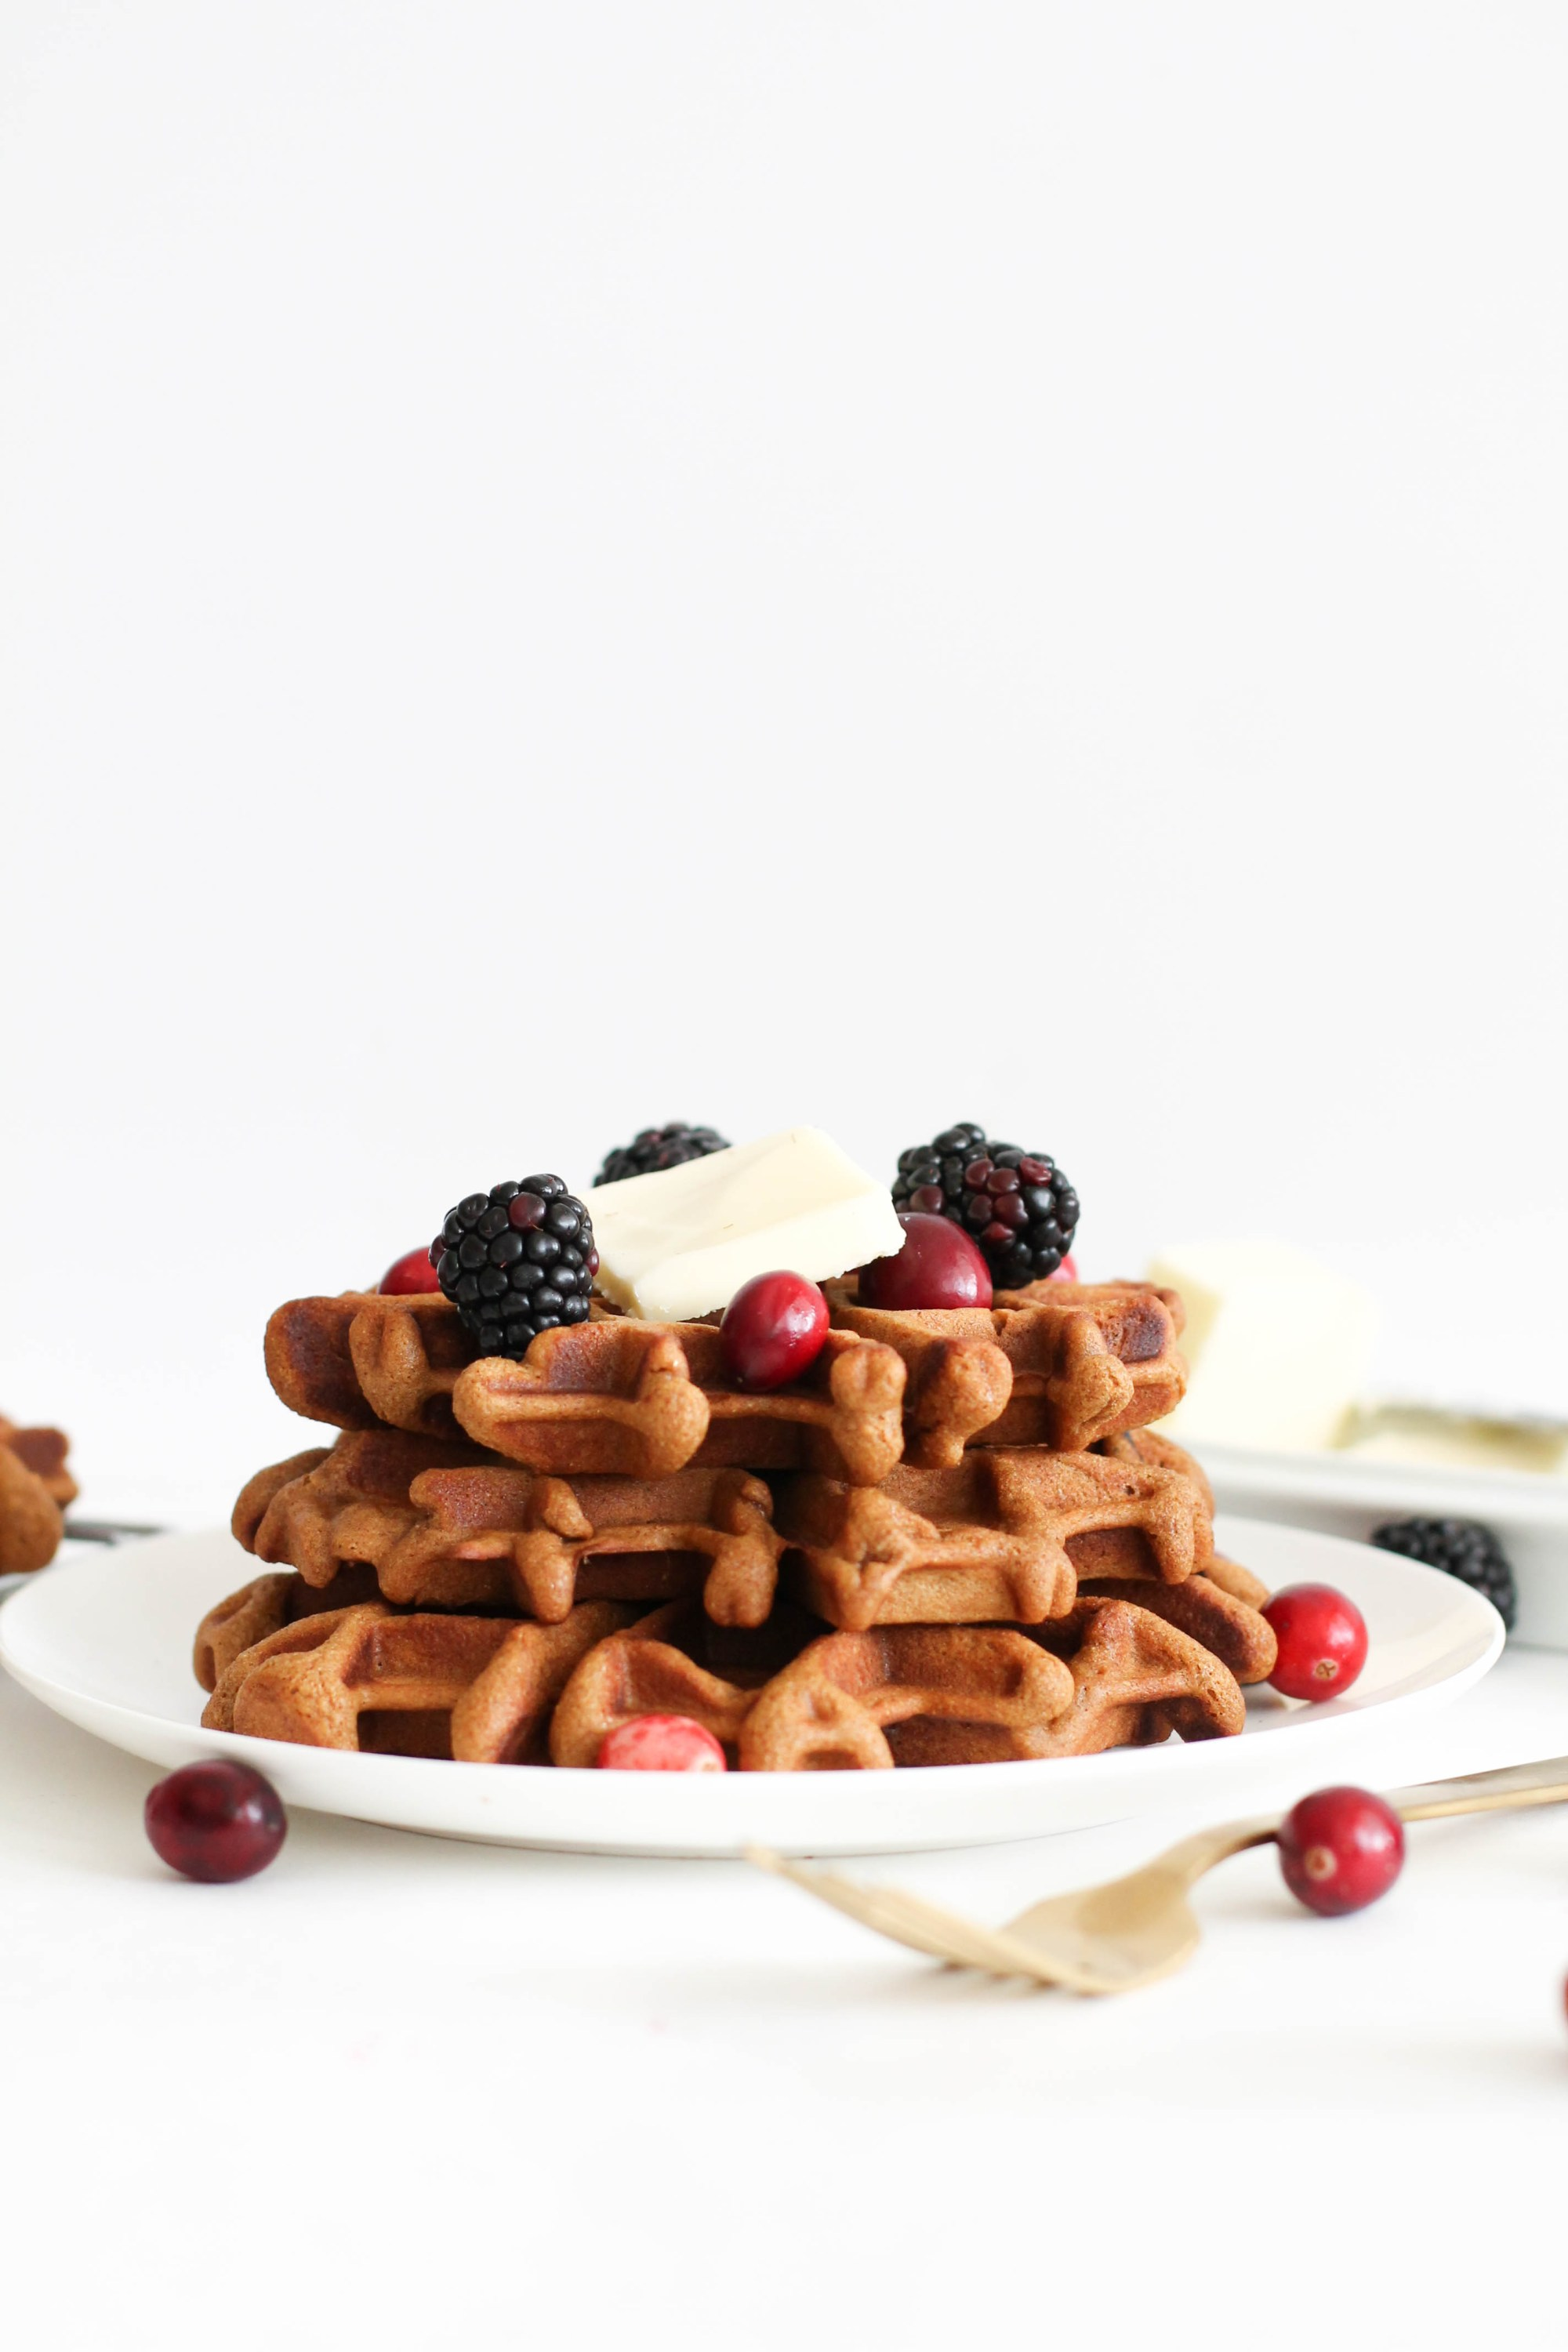 Six ingredient Gingerbread Waffles from Kitchen of Danielle.